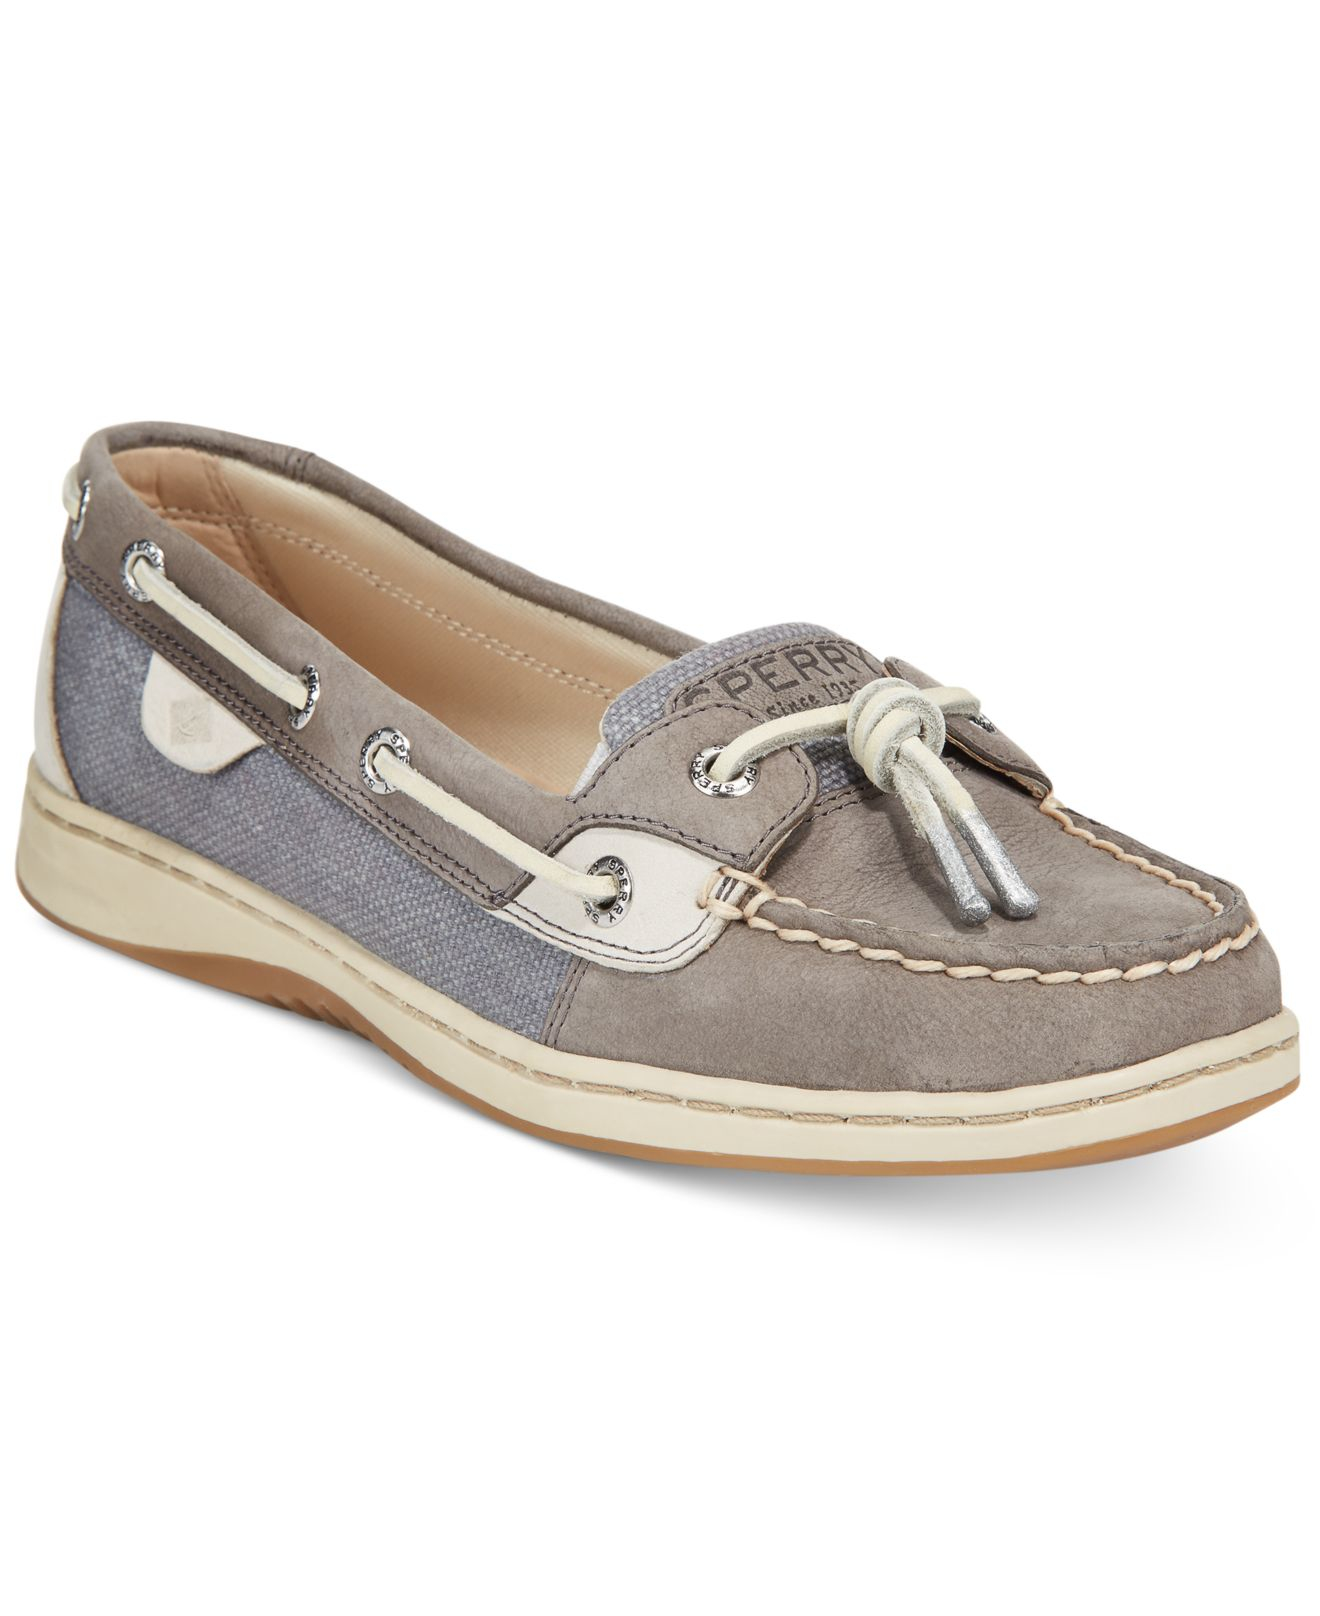 Rubber Sole Shoes For Work Women S